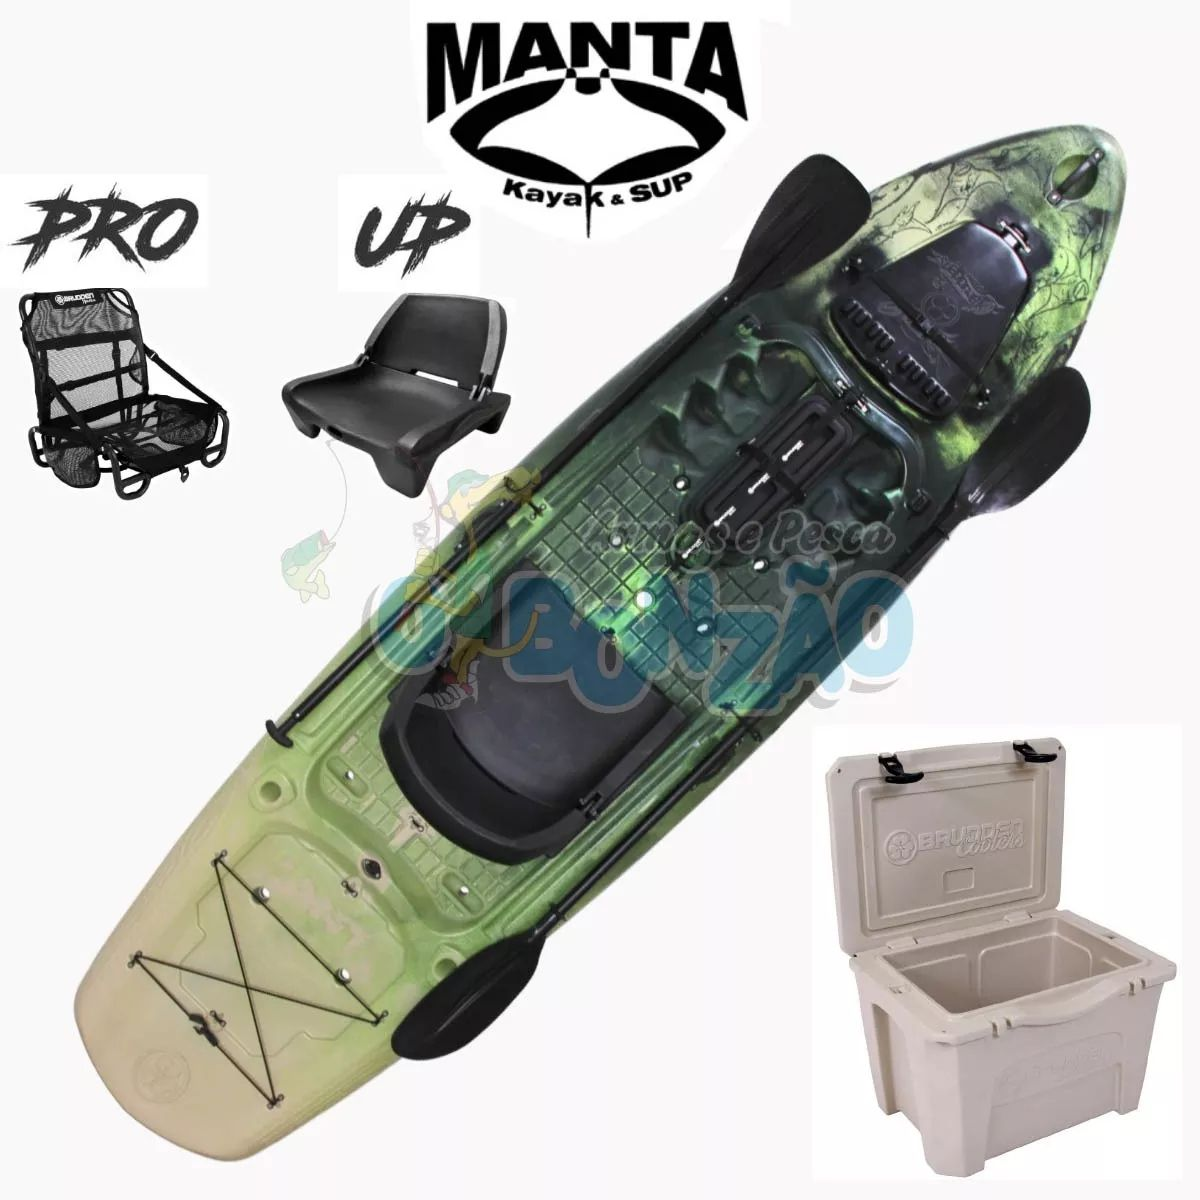 Caiaque Brudden Stand UP Manta Fishing Combo - Trio